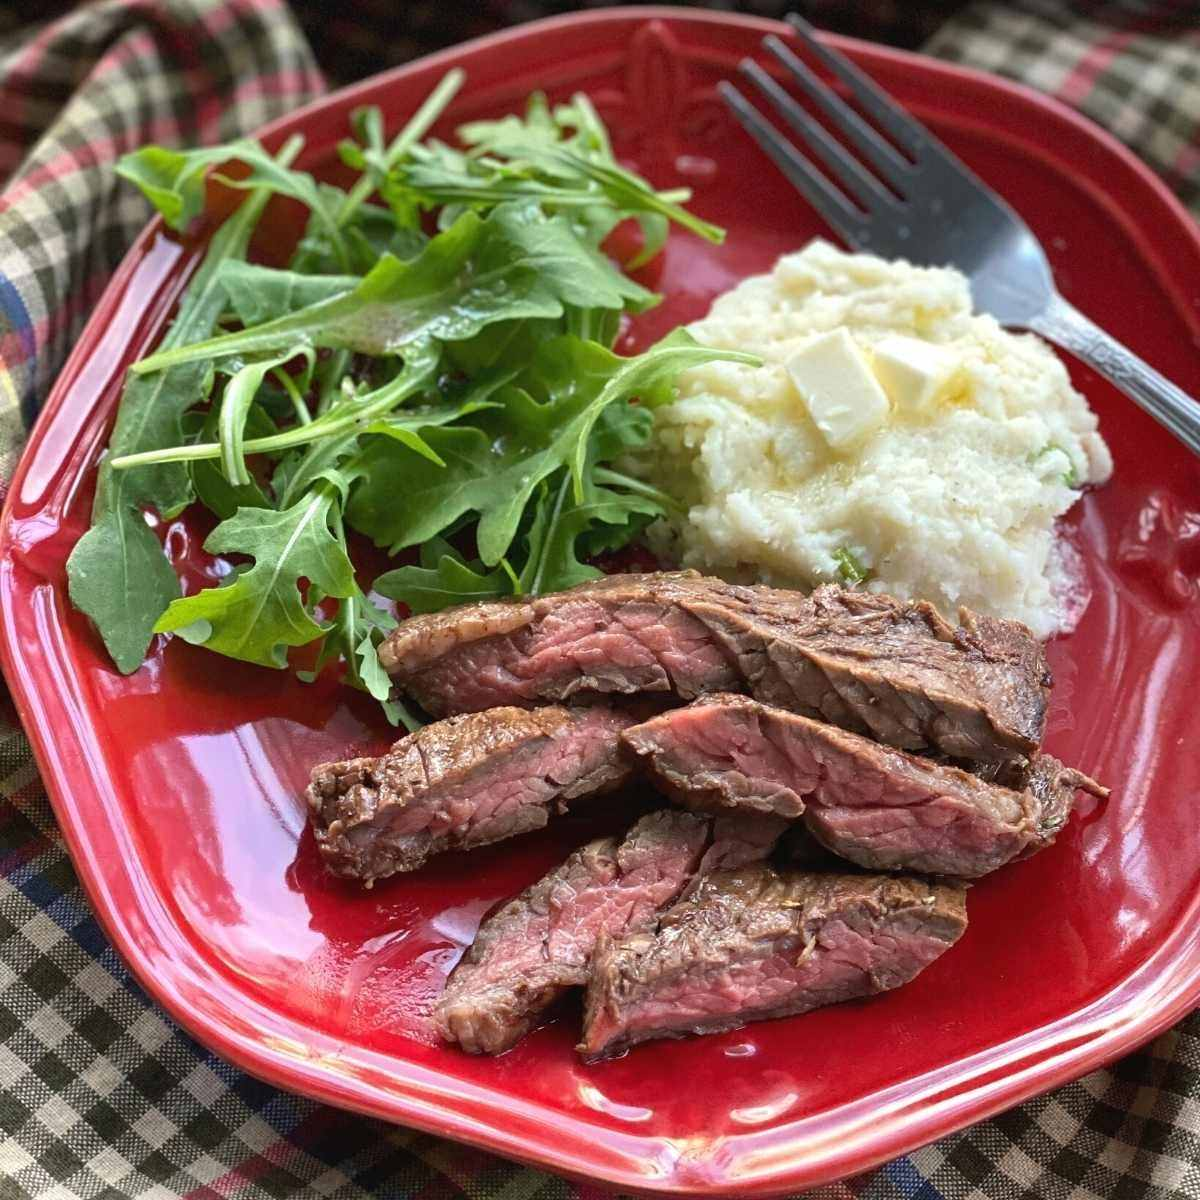 Slices of bavette steak on a plate with mashed cauliflower and arugula.